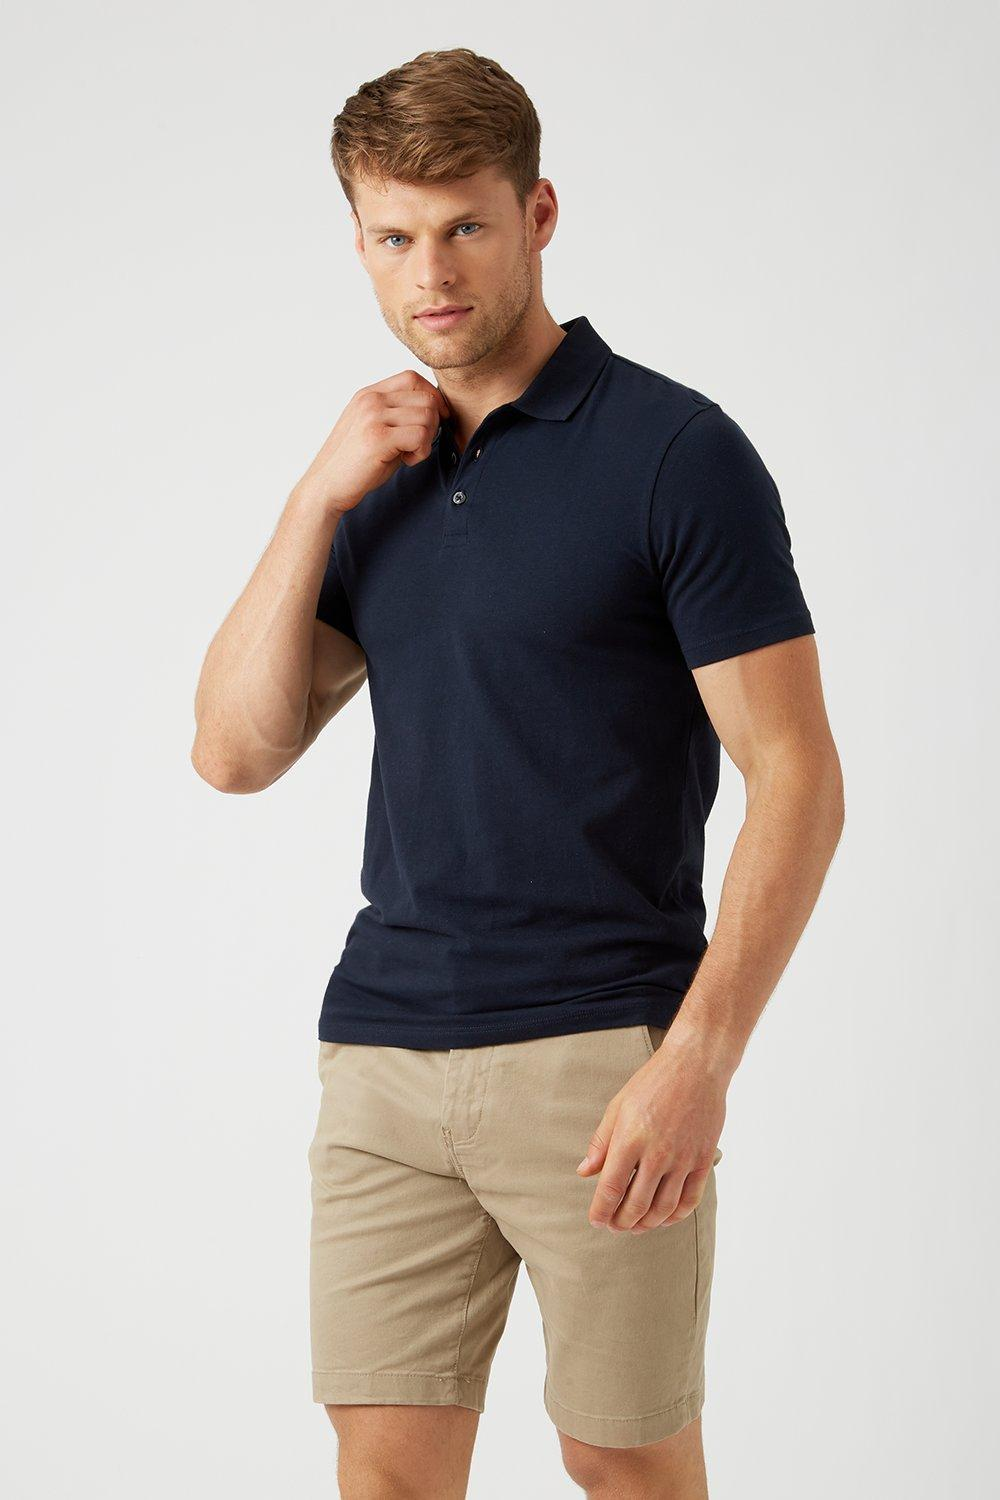 Men'S Navy Muscle Fit Polo Shirt - S